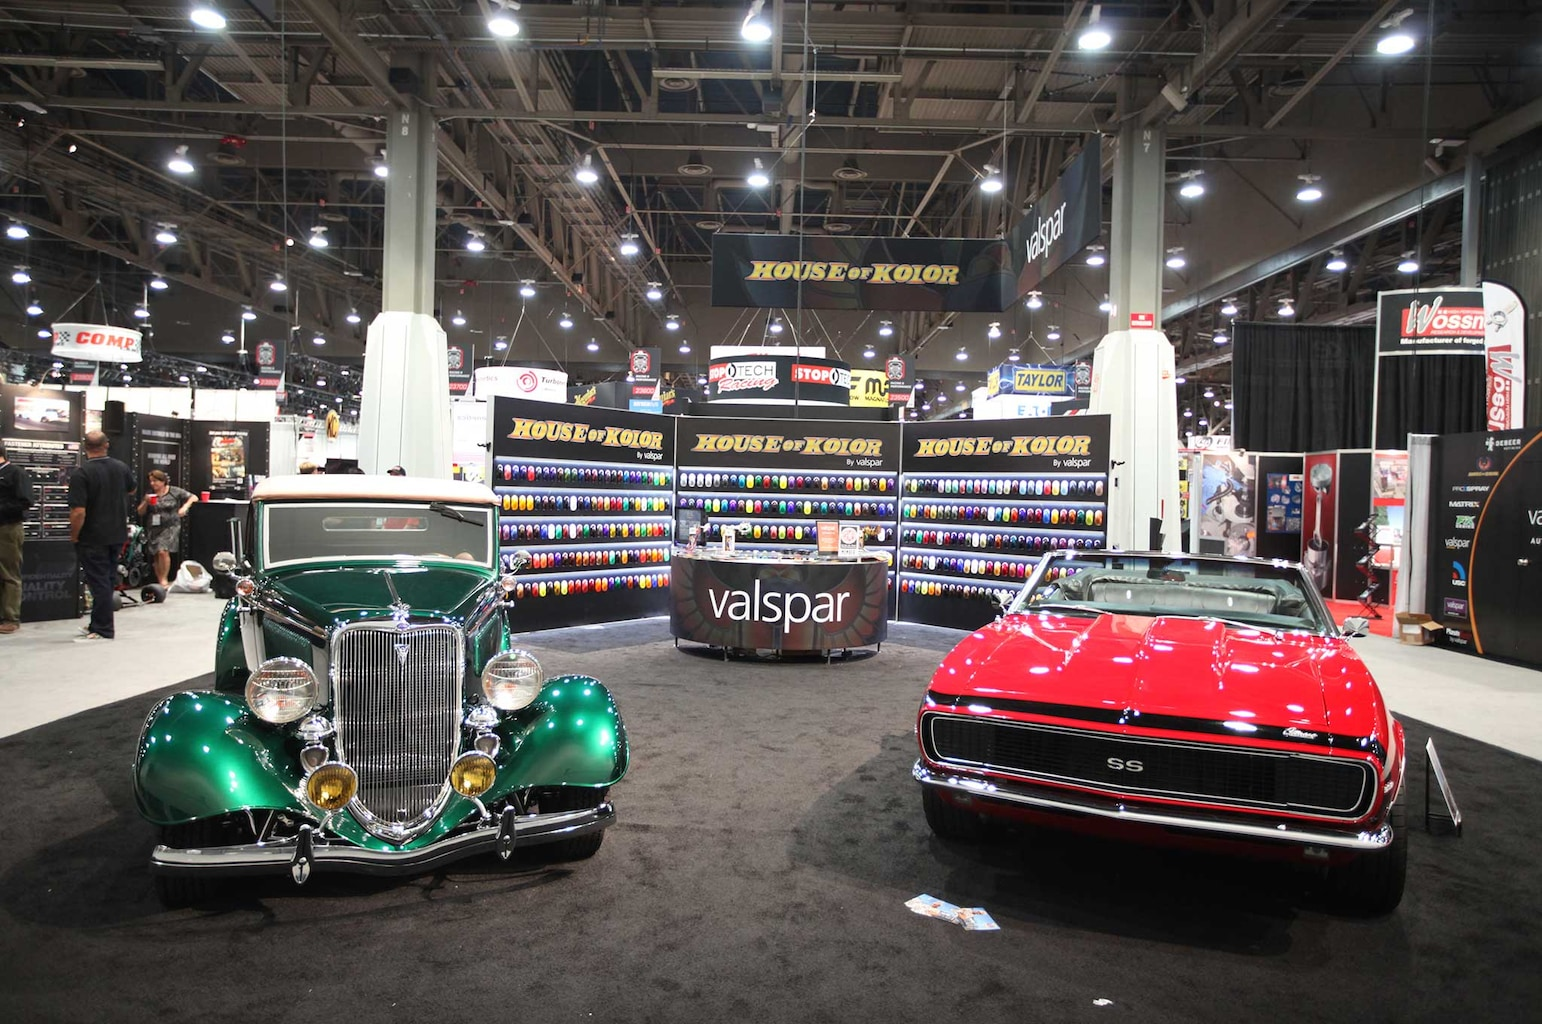 008 painters at sema 2015 house of kolor